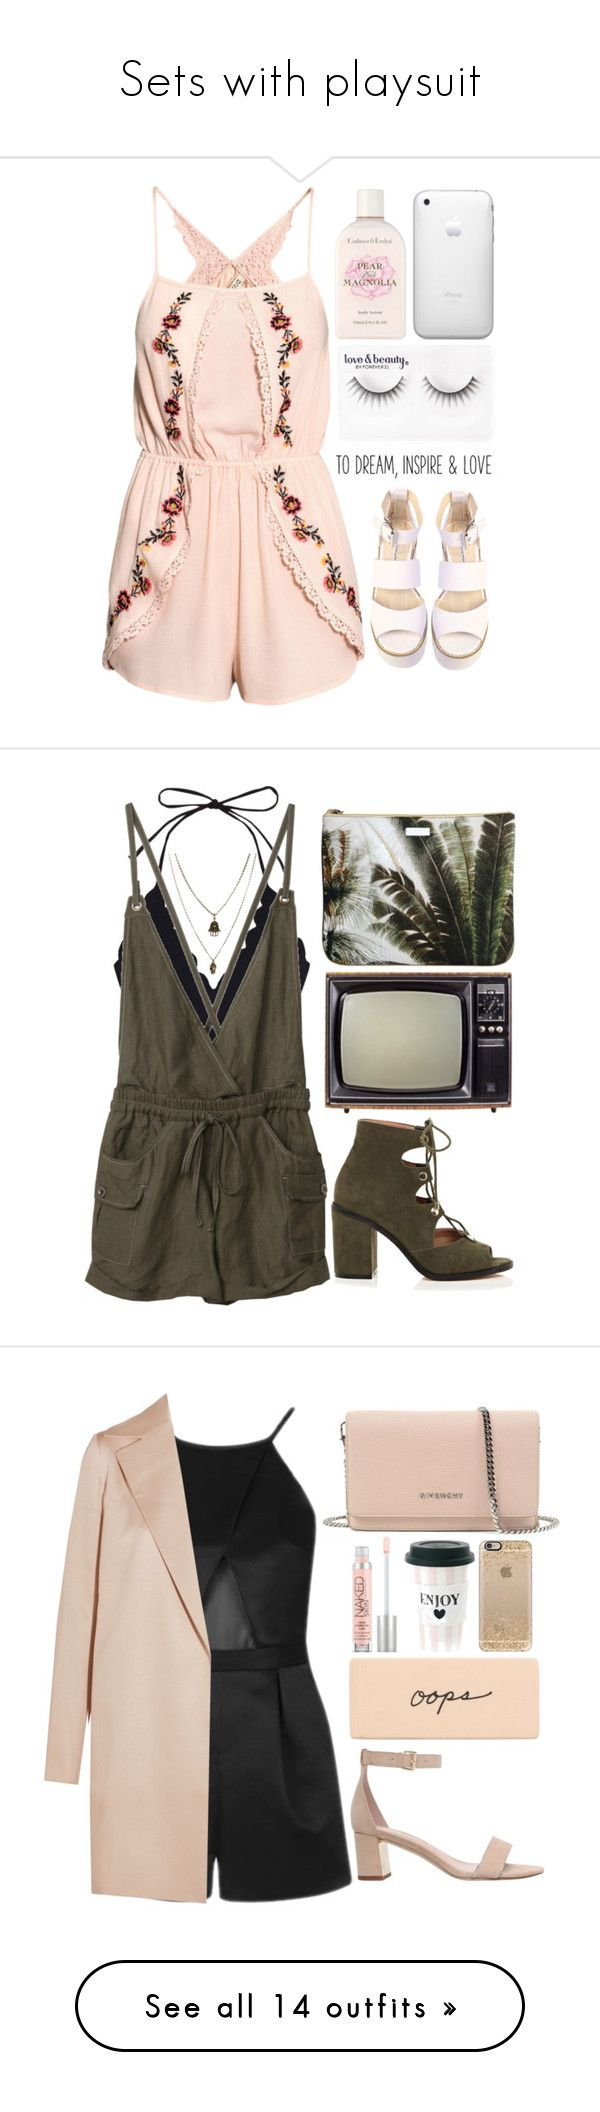 """""""Sets with playsuit"""" by andreiasilva07 ❤ liked on Polyvore featuring H&M, Crabtree & Evelyn, Forever 21, Windsor Smith, Marysia Swim, Mauro Grifoni, River Island, Jamie Jewellery, Carvela and Givenchy"""